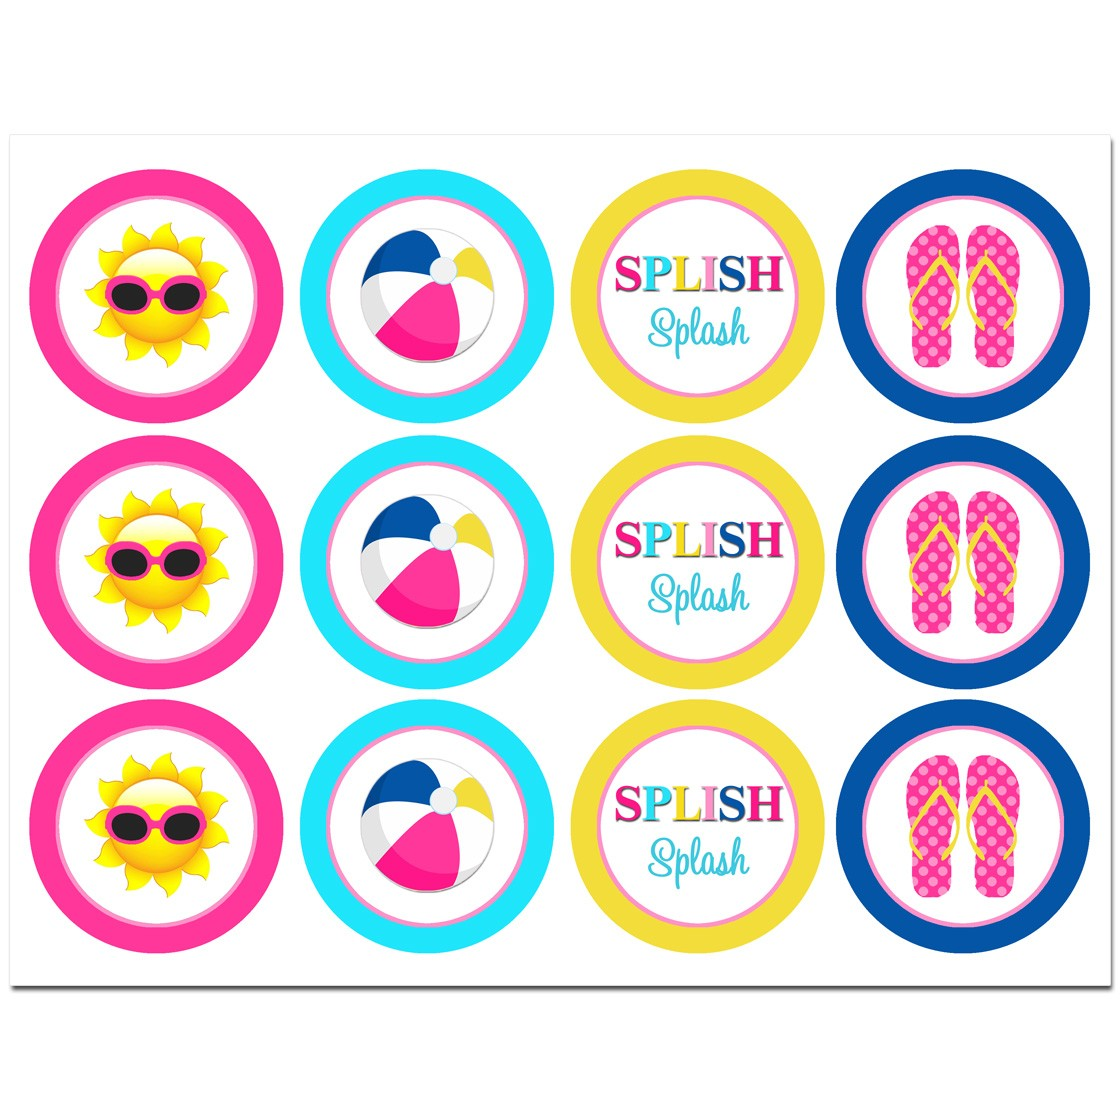 Splash Pool Party Cupcake Toppers By That Party Chick